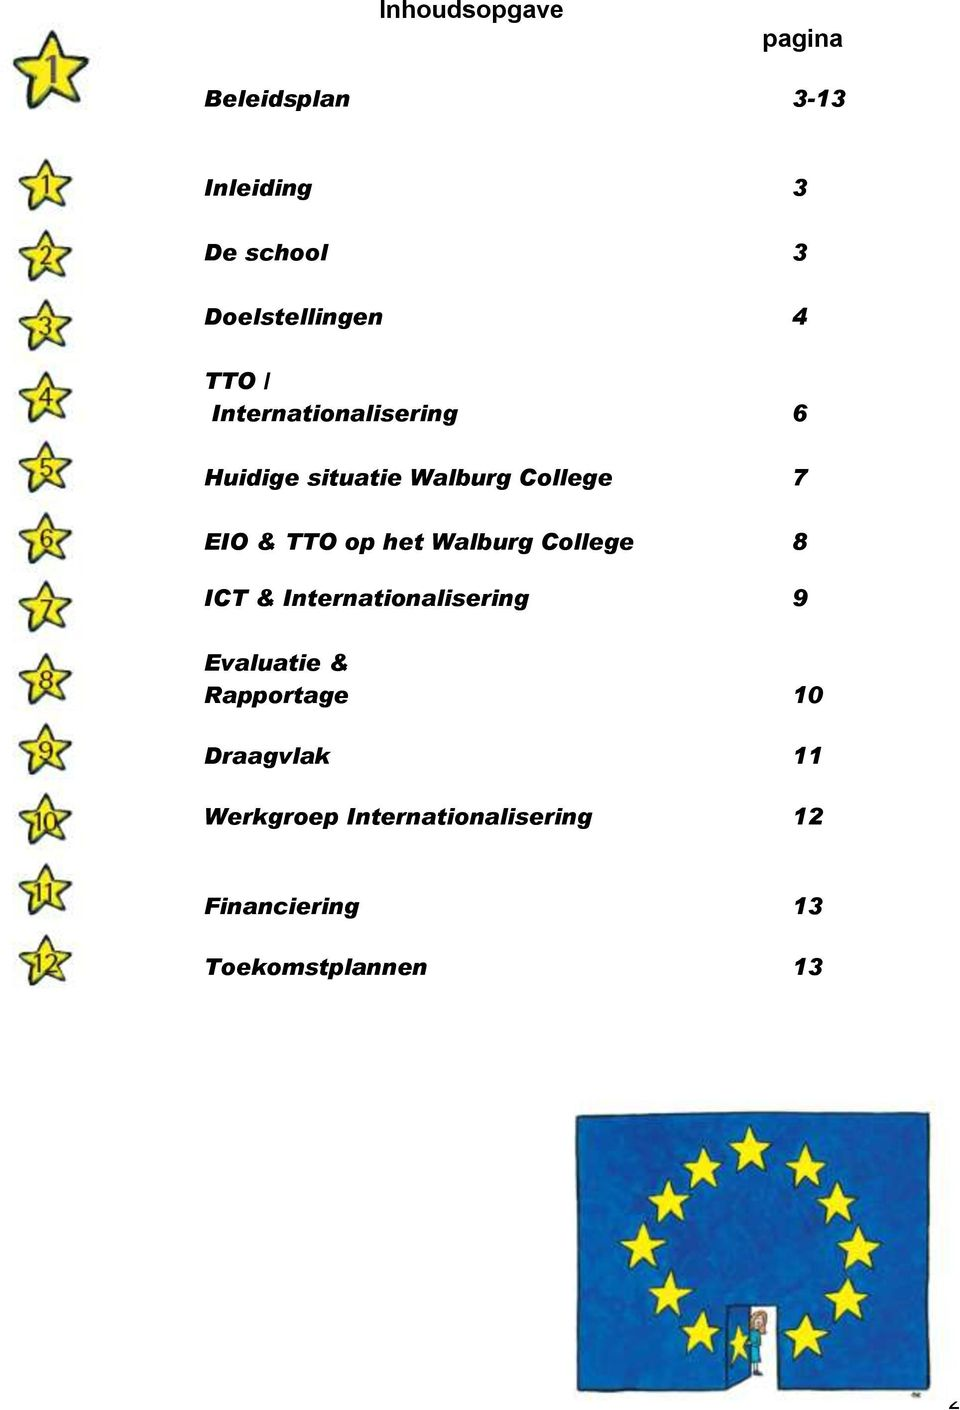 het Walburg College 8 ICT & Internationalisering 9 Evaluatie & Rapportage 10